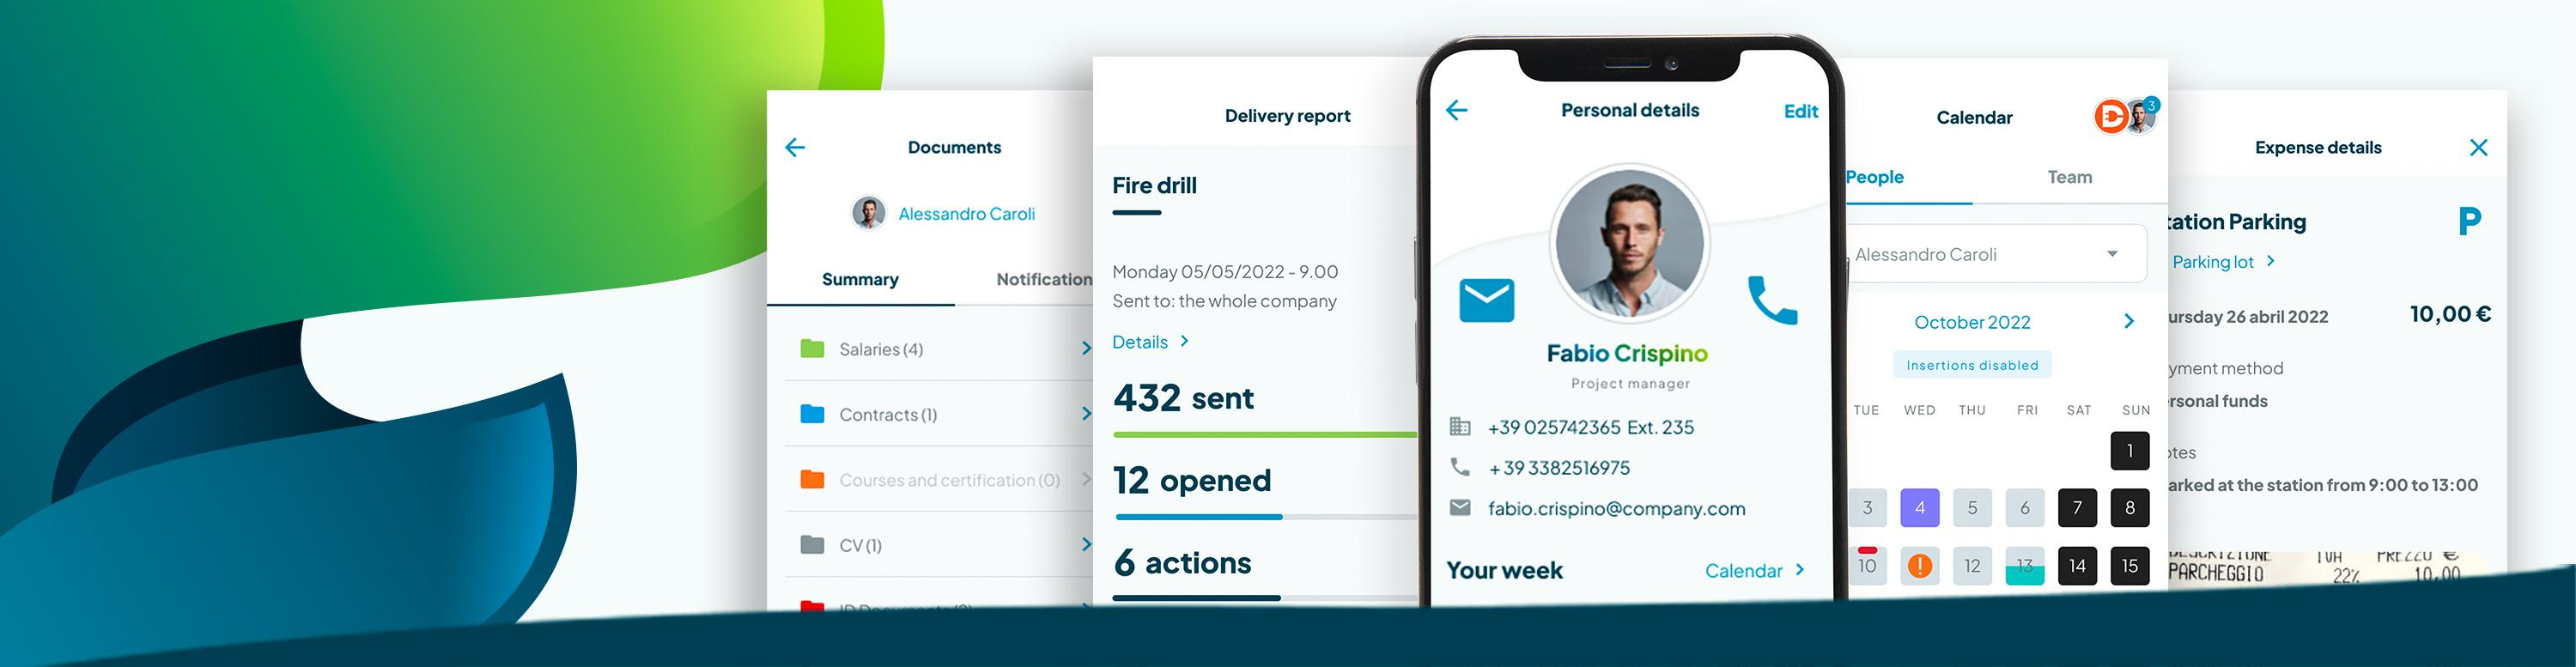 Review Fluida: Simplify your human resources with the HR management system - appvizer